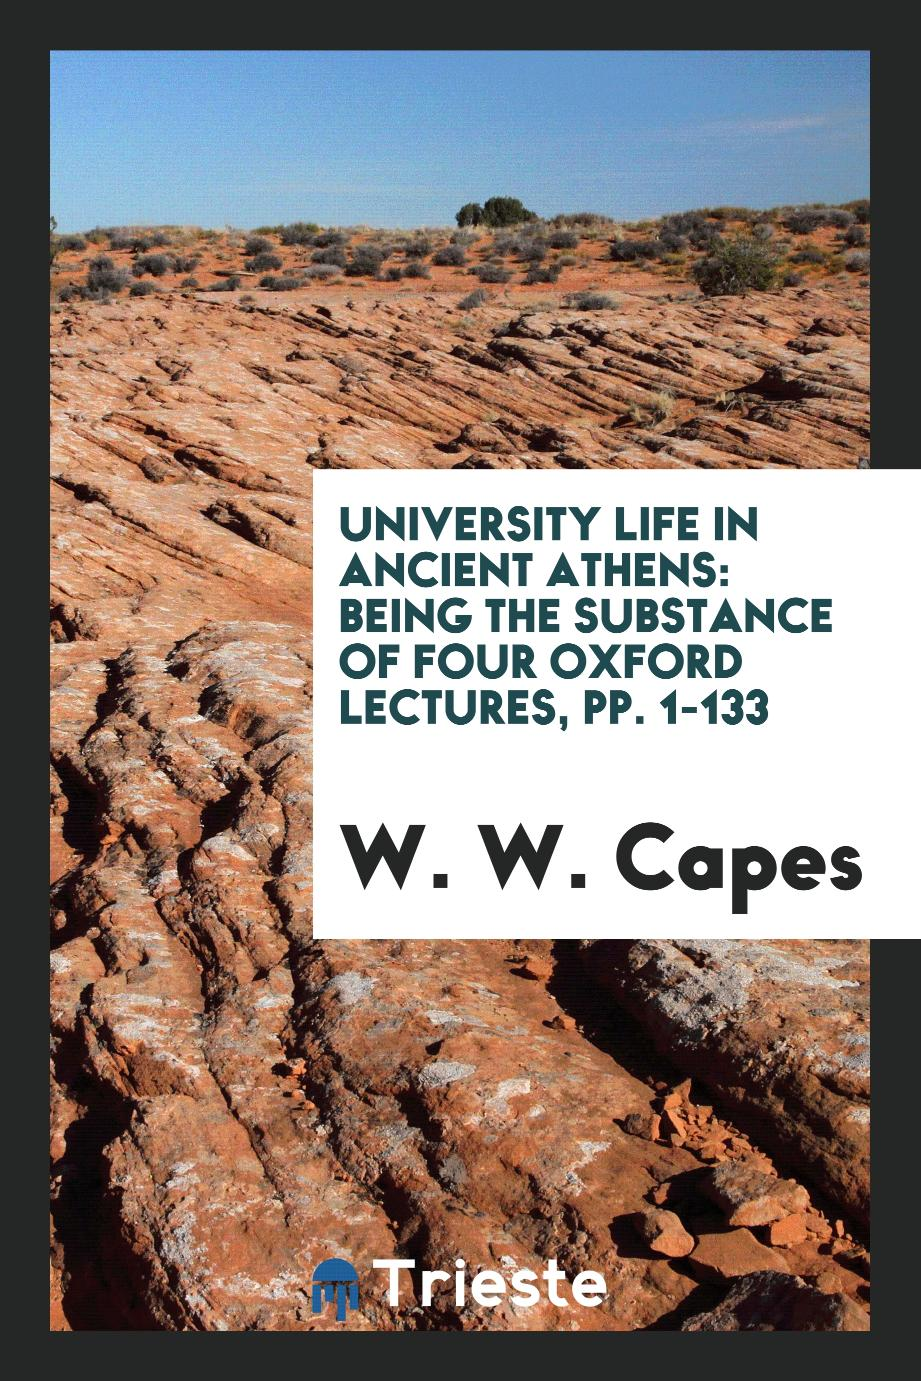 University Life in Ancient Athens: Being the Substance of Four Oxford Lectures, pp. 1-133